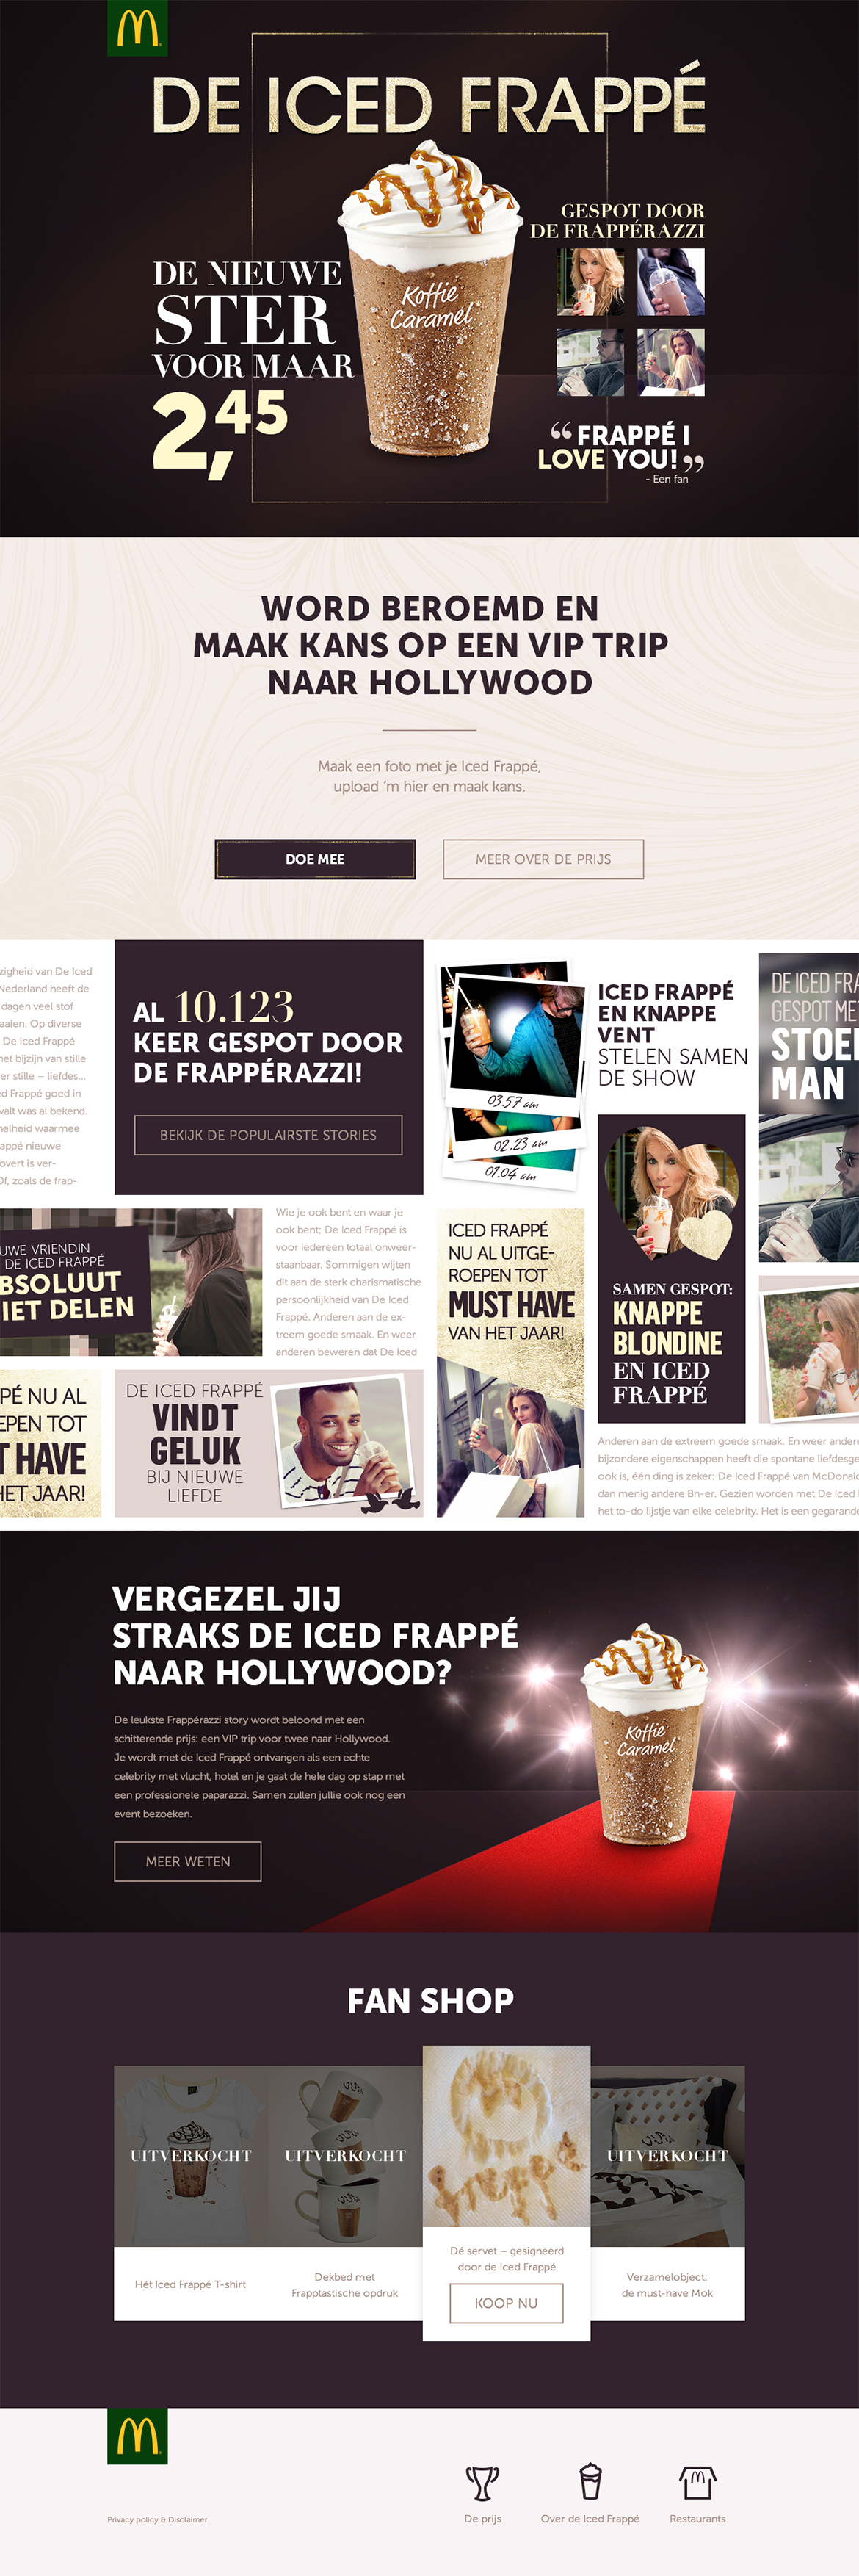 Frappe_Homepage